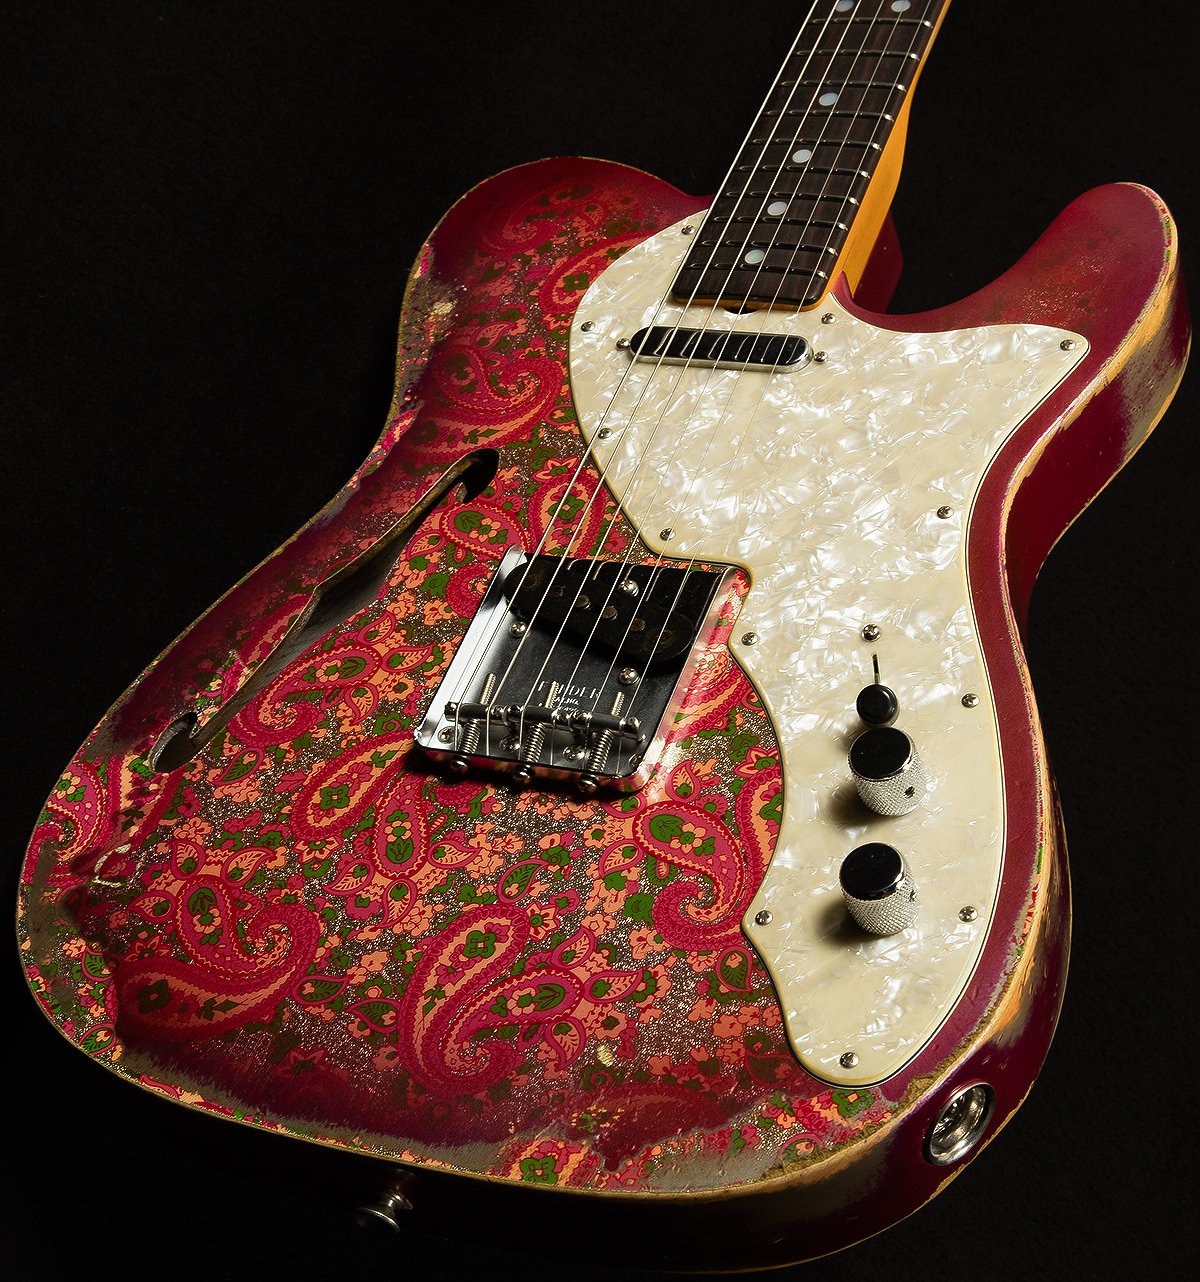 Welcome to the latest Wildwood 10 model! 1969 Telecaster Thinline finished off with hand wound Twisted Tele pickups! https://t.co/2z7EhBQth2